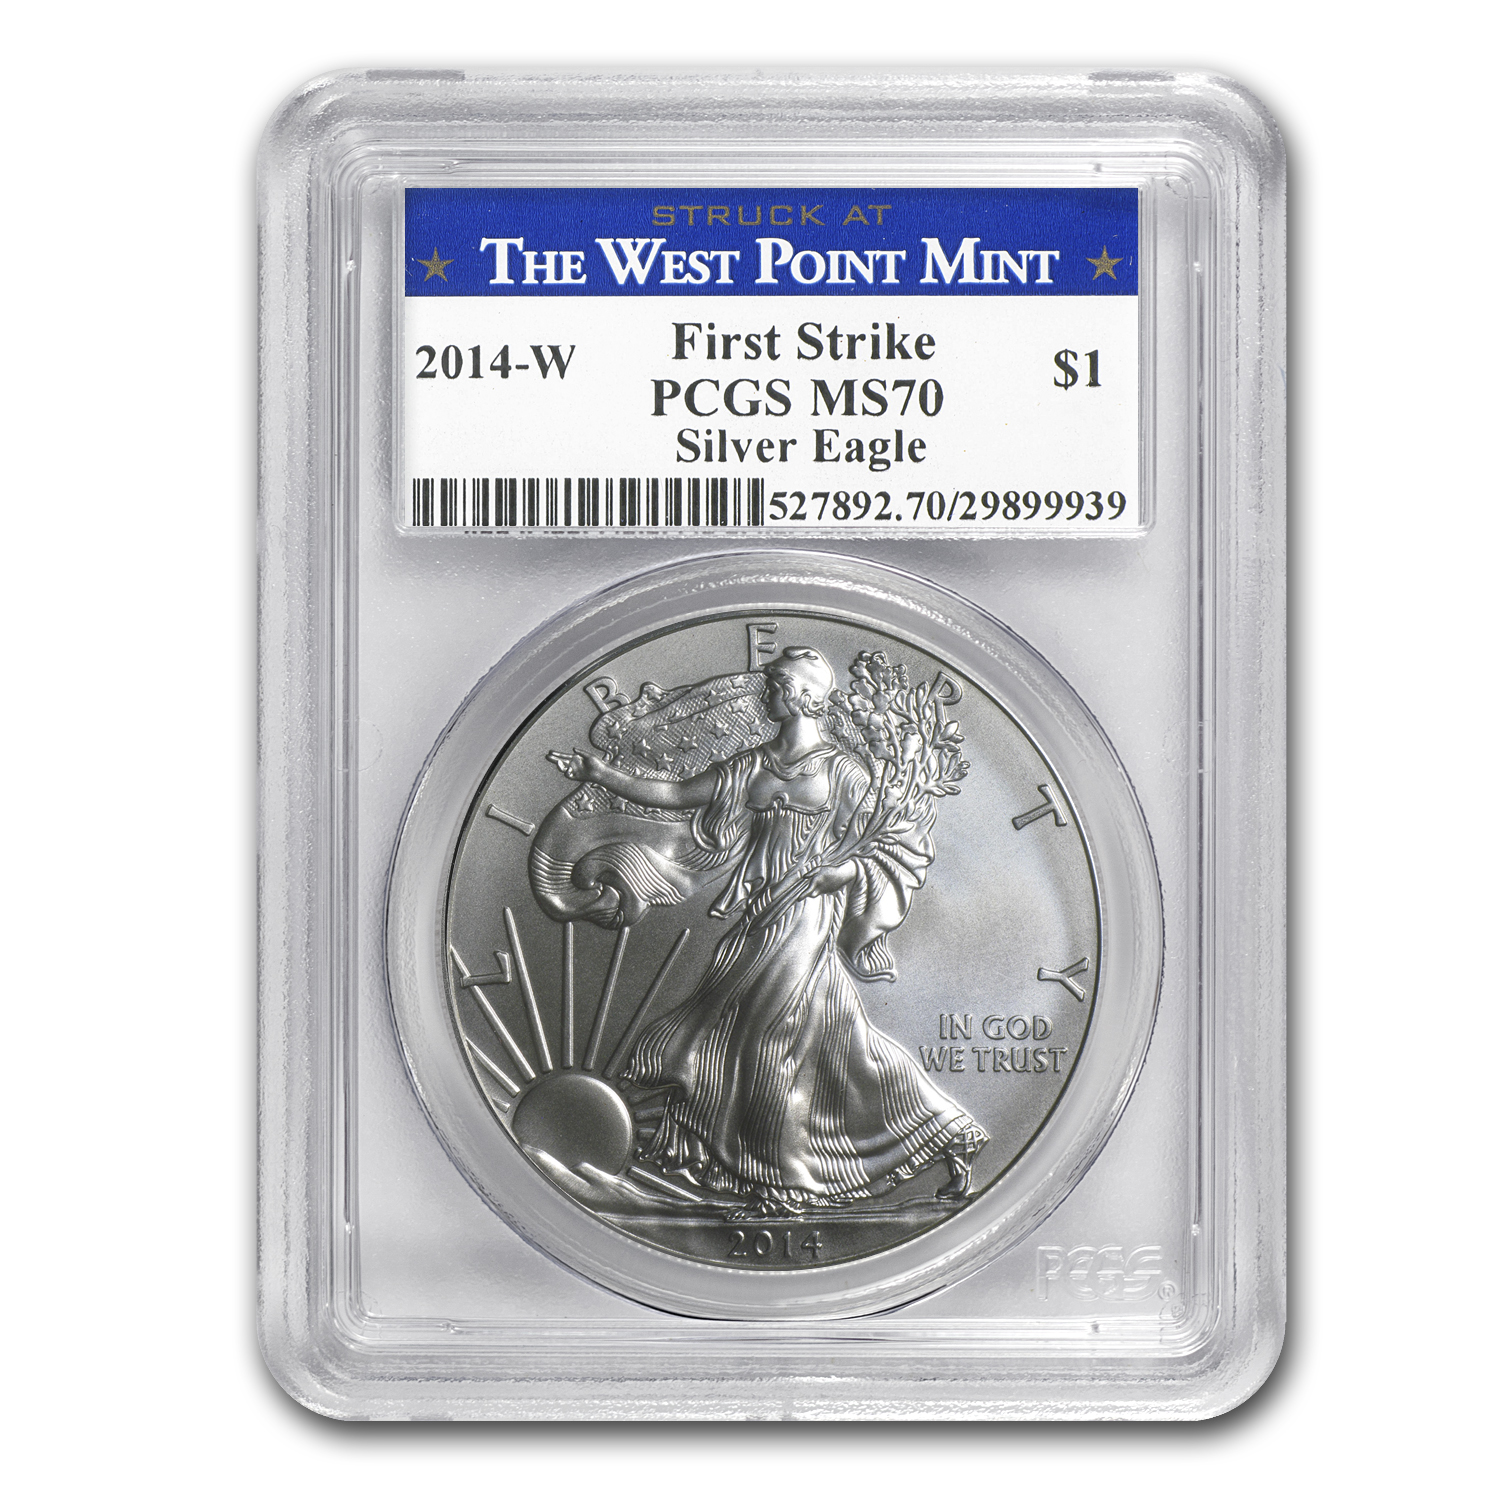 2014-W Burnished Silver Eagle - MS-70 PCGS - First Strike